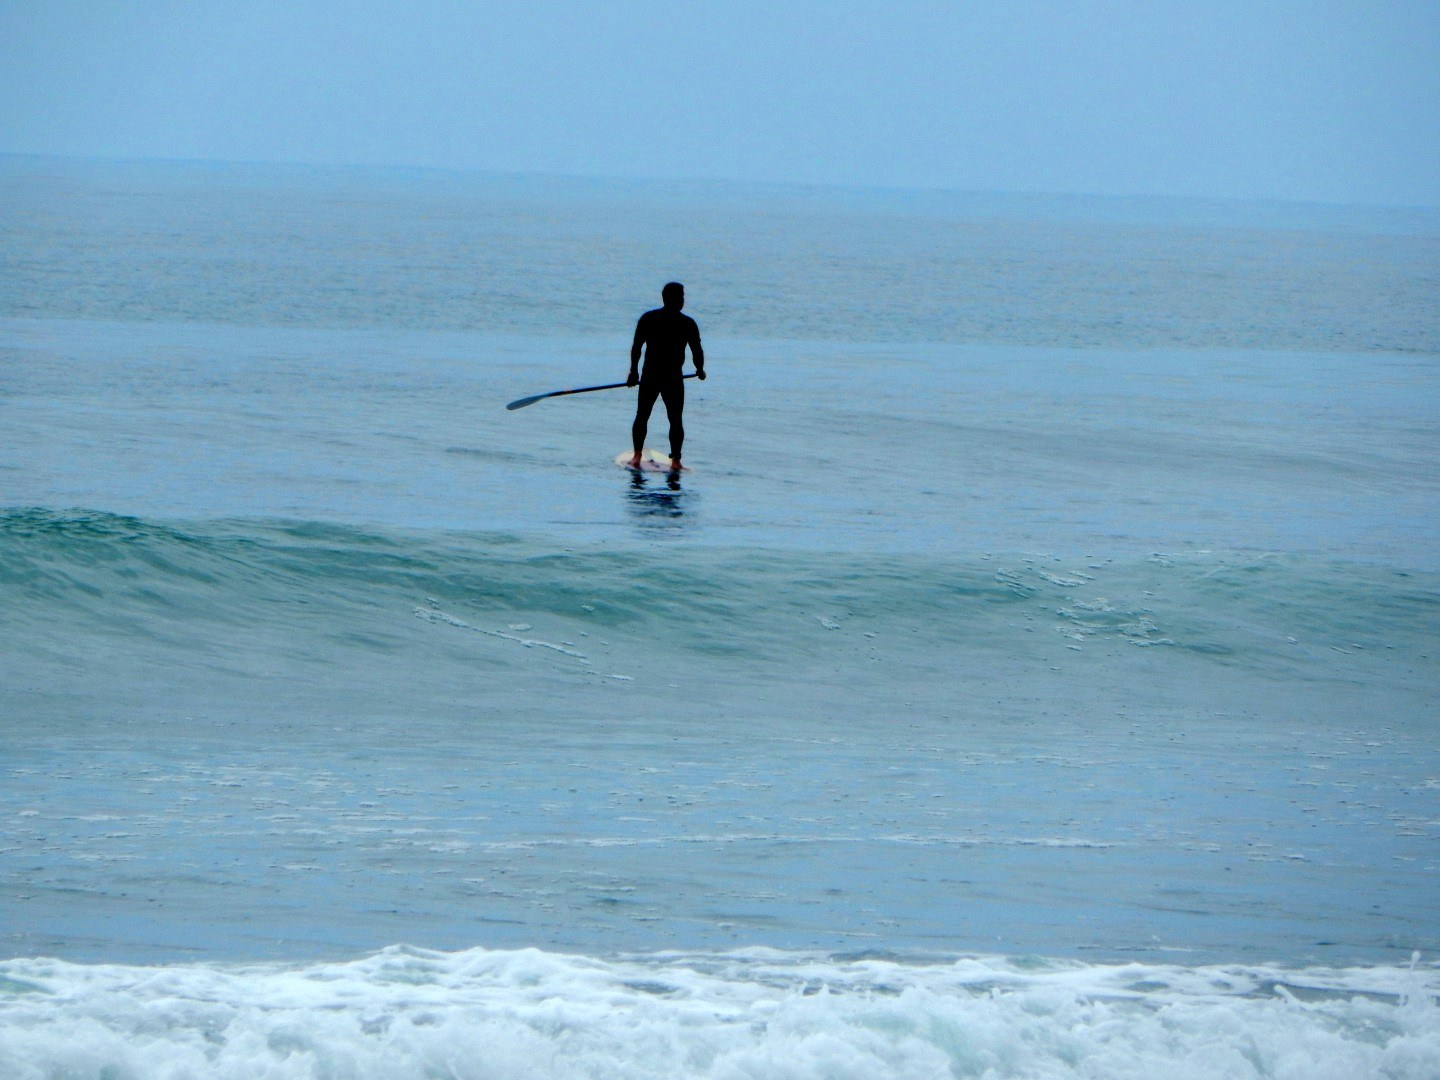 paddle boarder dogpatch san onofre state beach